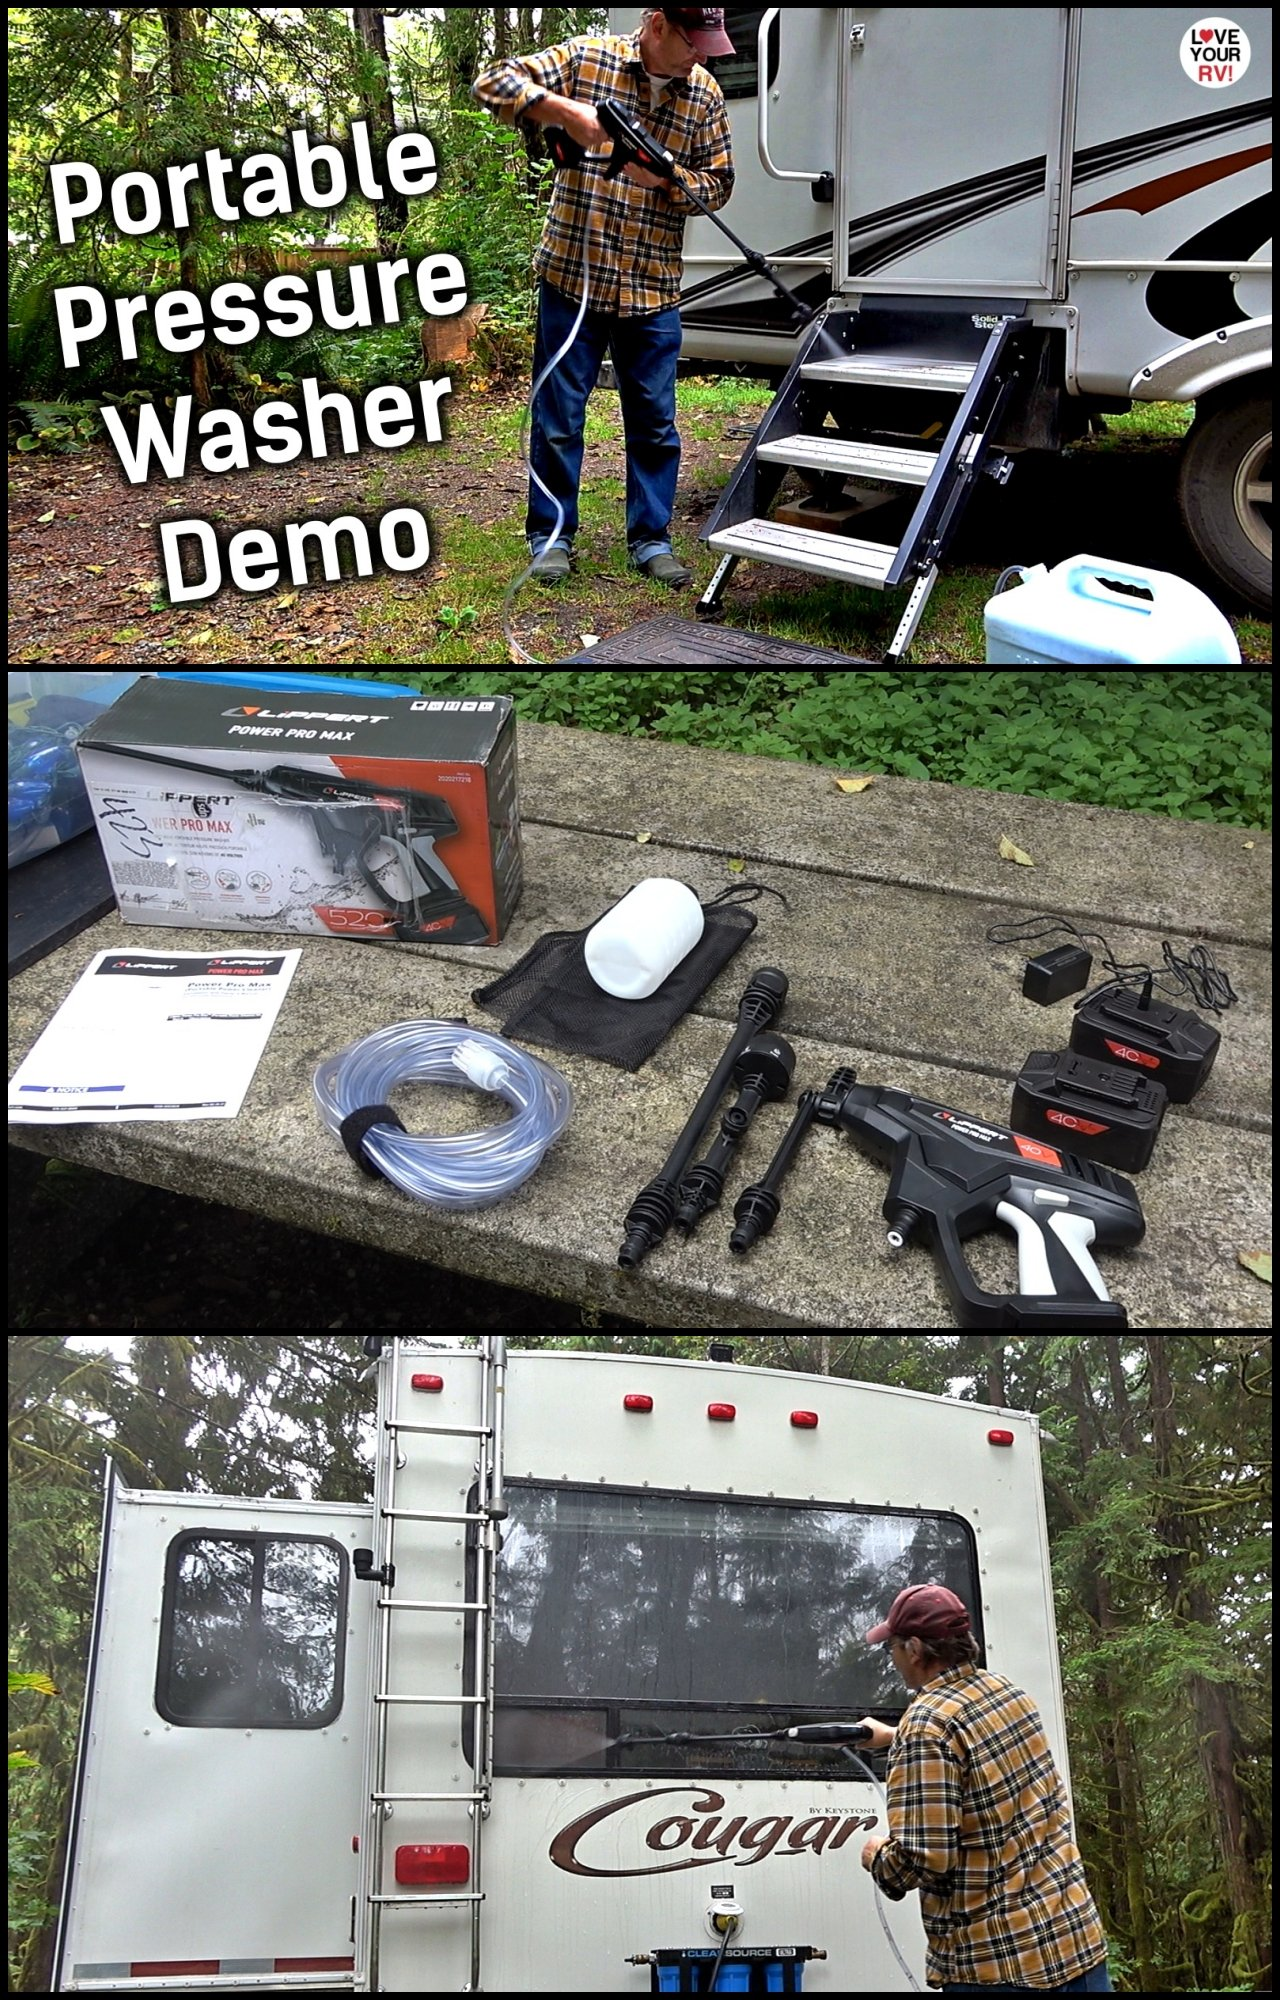 Lippert Power Pro Max Portable Pressure Washer Camping Demo Uses